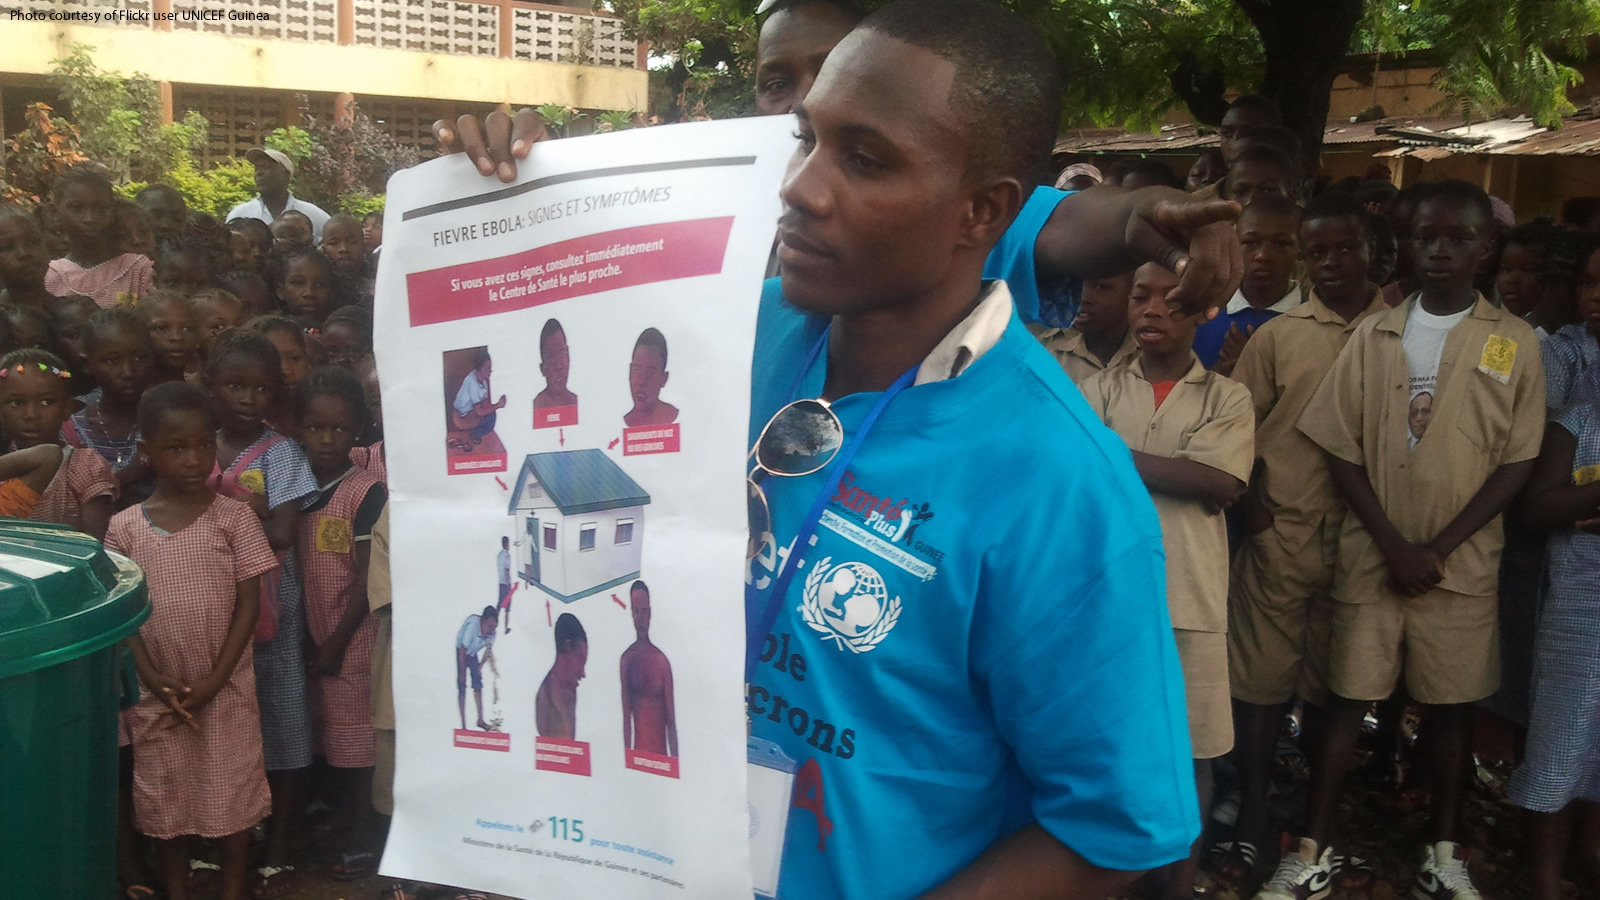 Ebola Education Poster by UNICEF Guinea